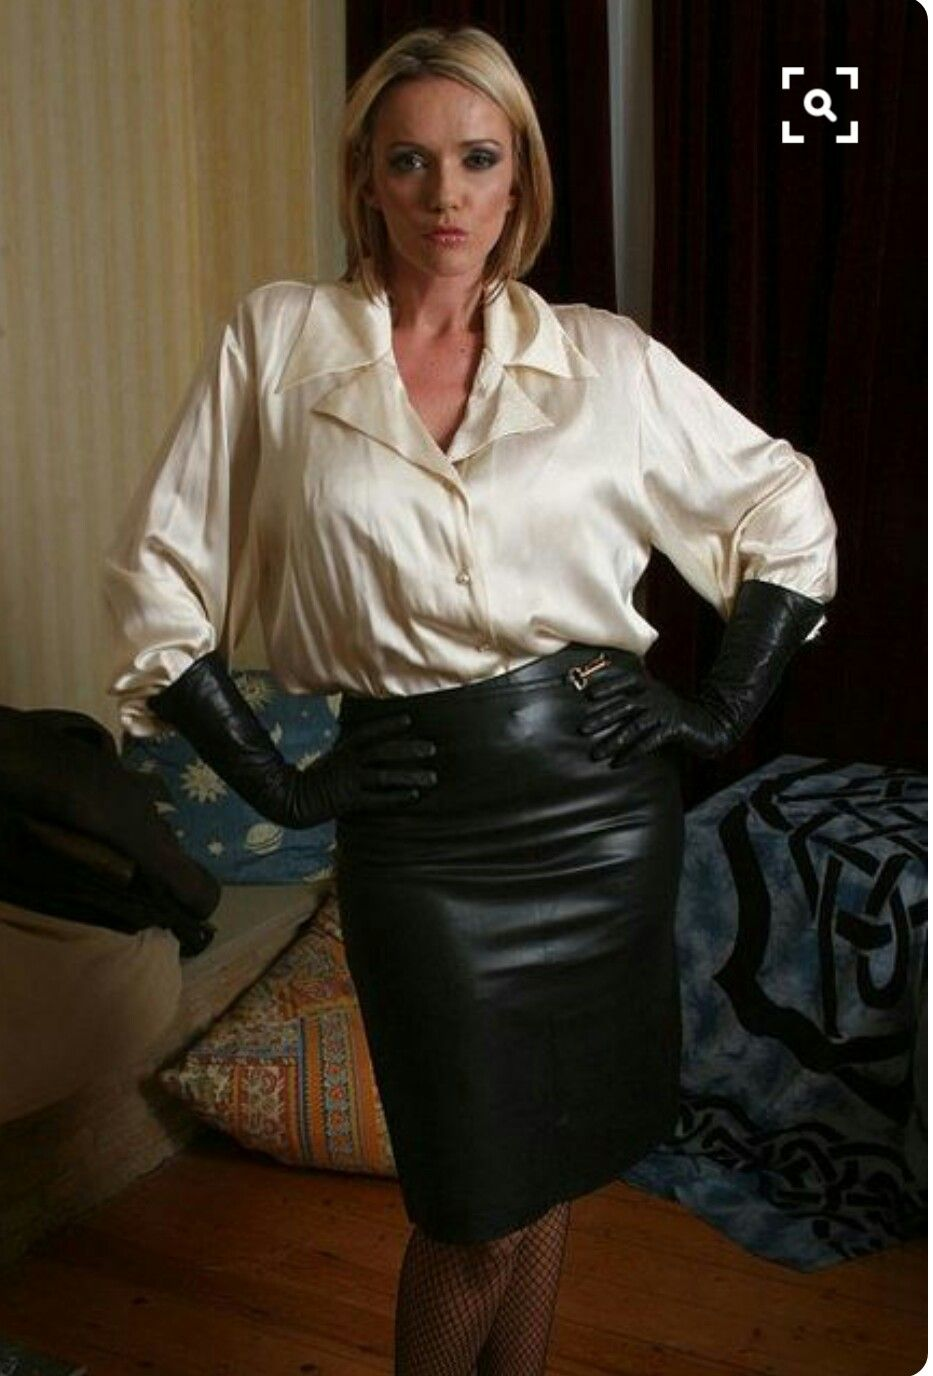 Leather skirt worn sexy style. | Leather Skirts & Dresses ...